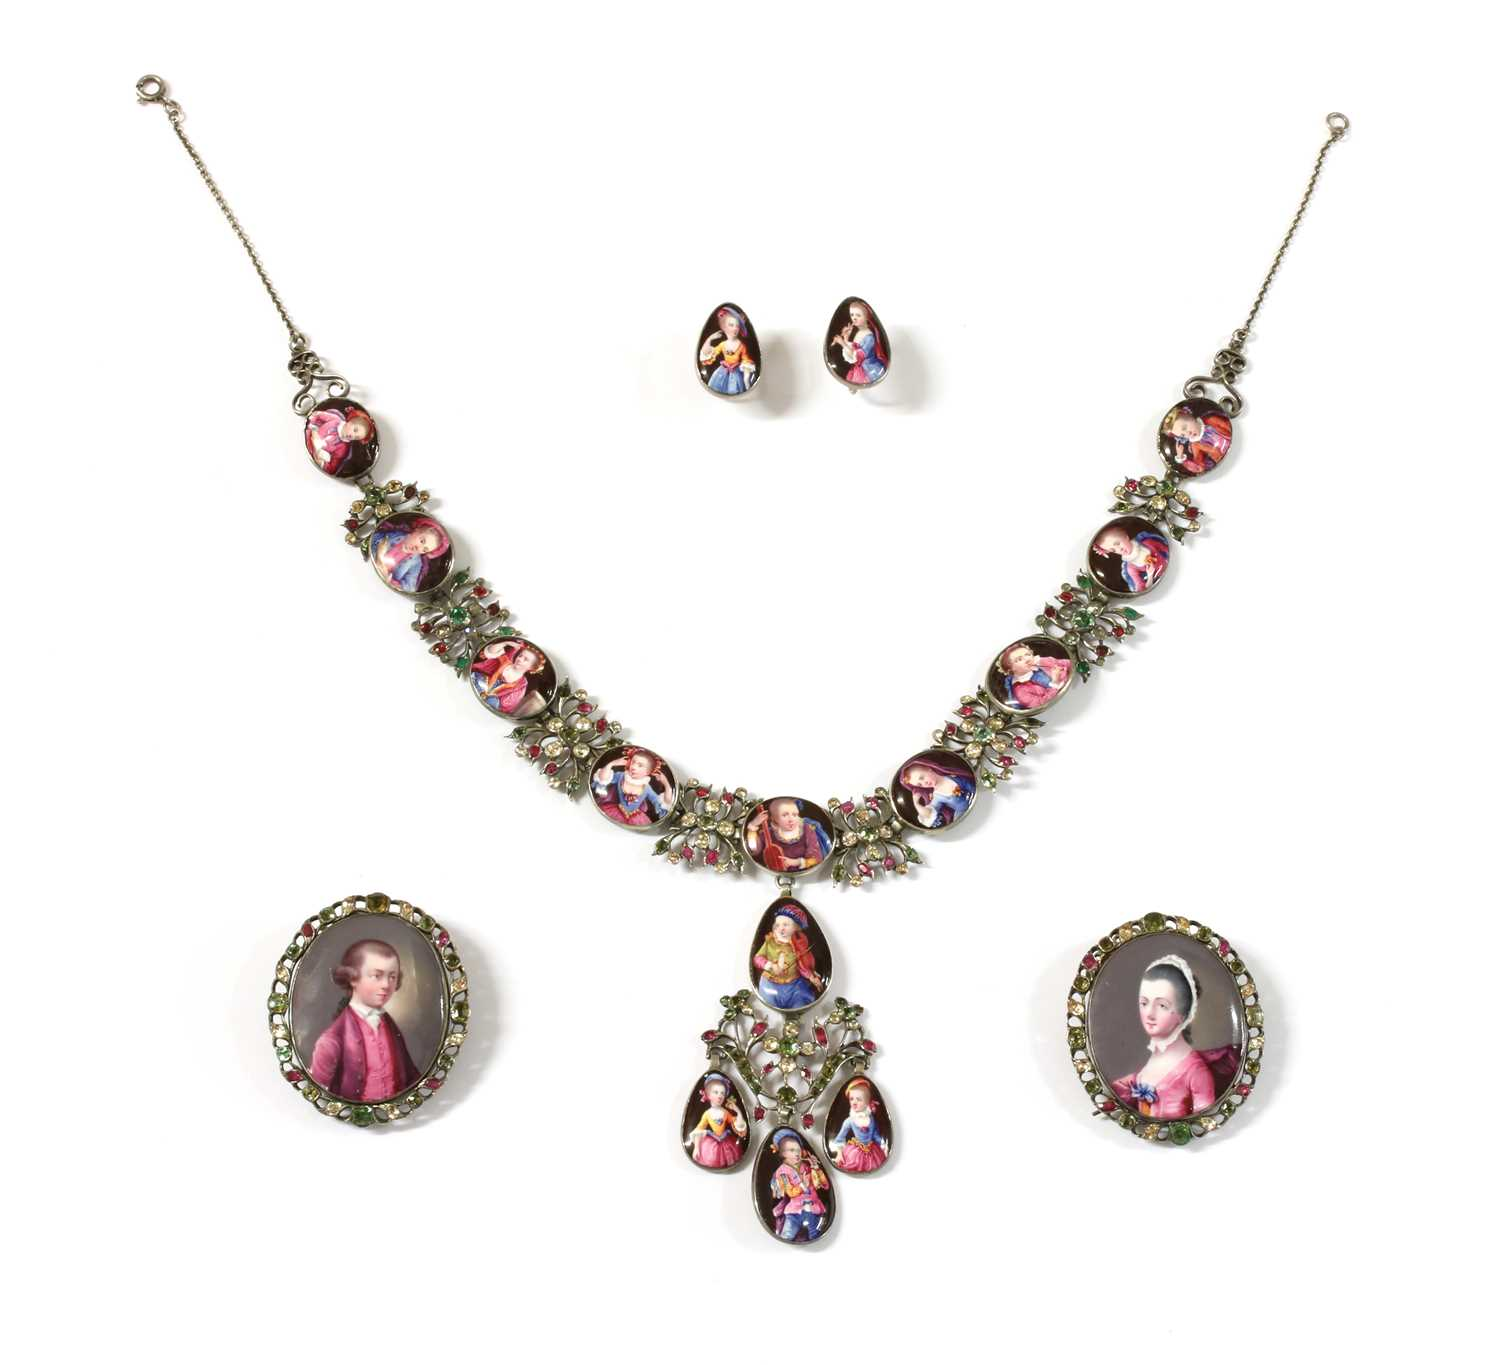 Lot 1 - An 18th century enamelled portrait miniature necklace, earrings and pair of clasps, cased suite